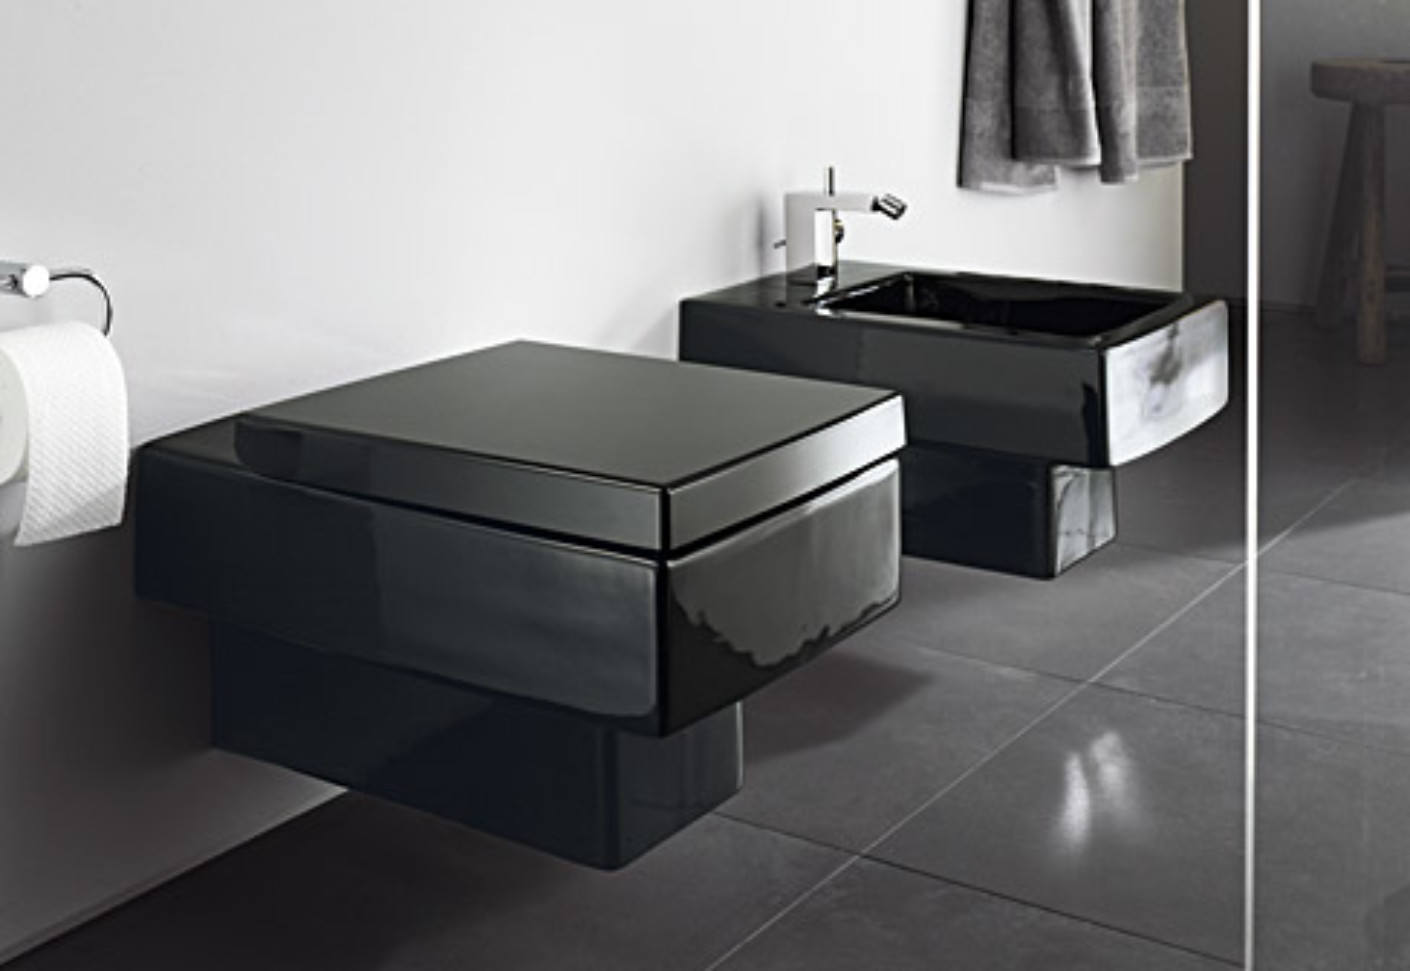 Vero Black wall toilet by Duravit  STYLEPARK